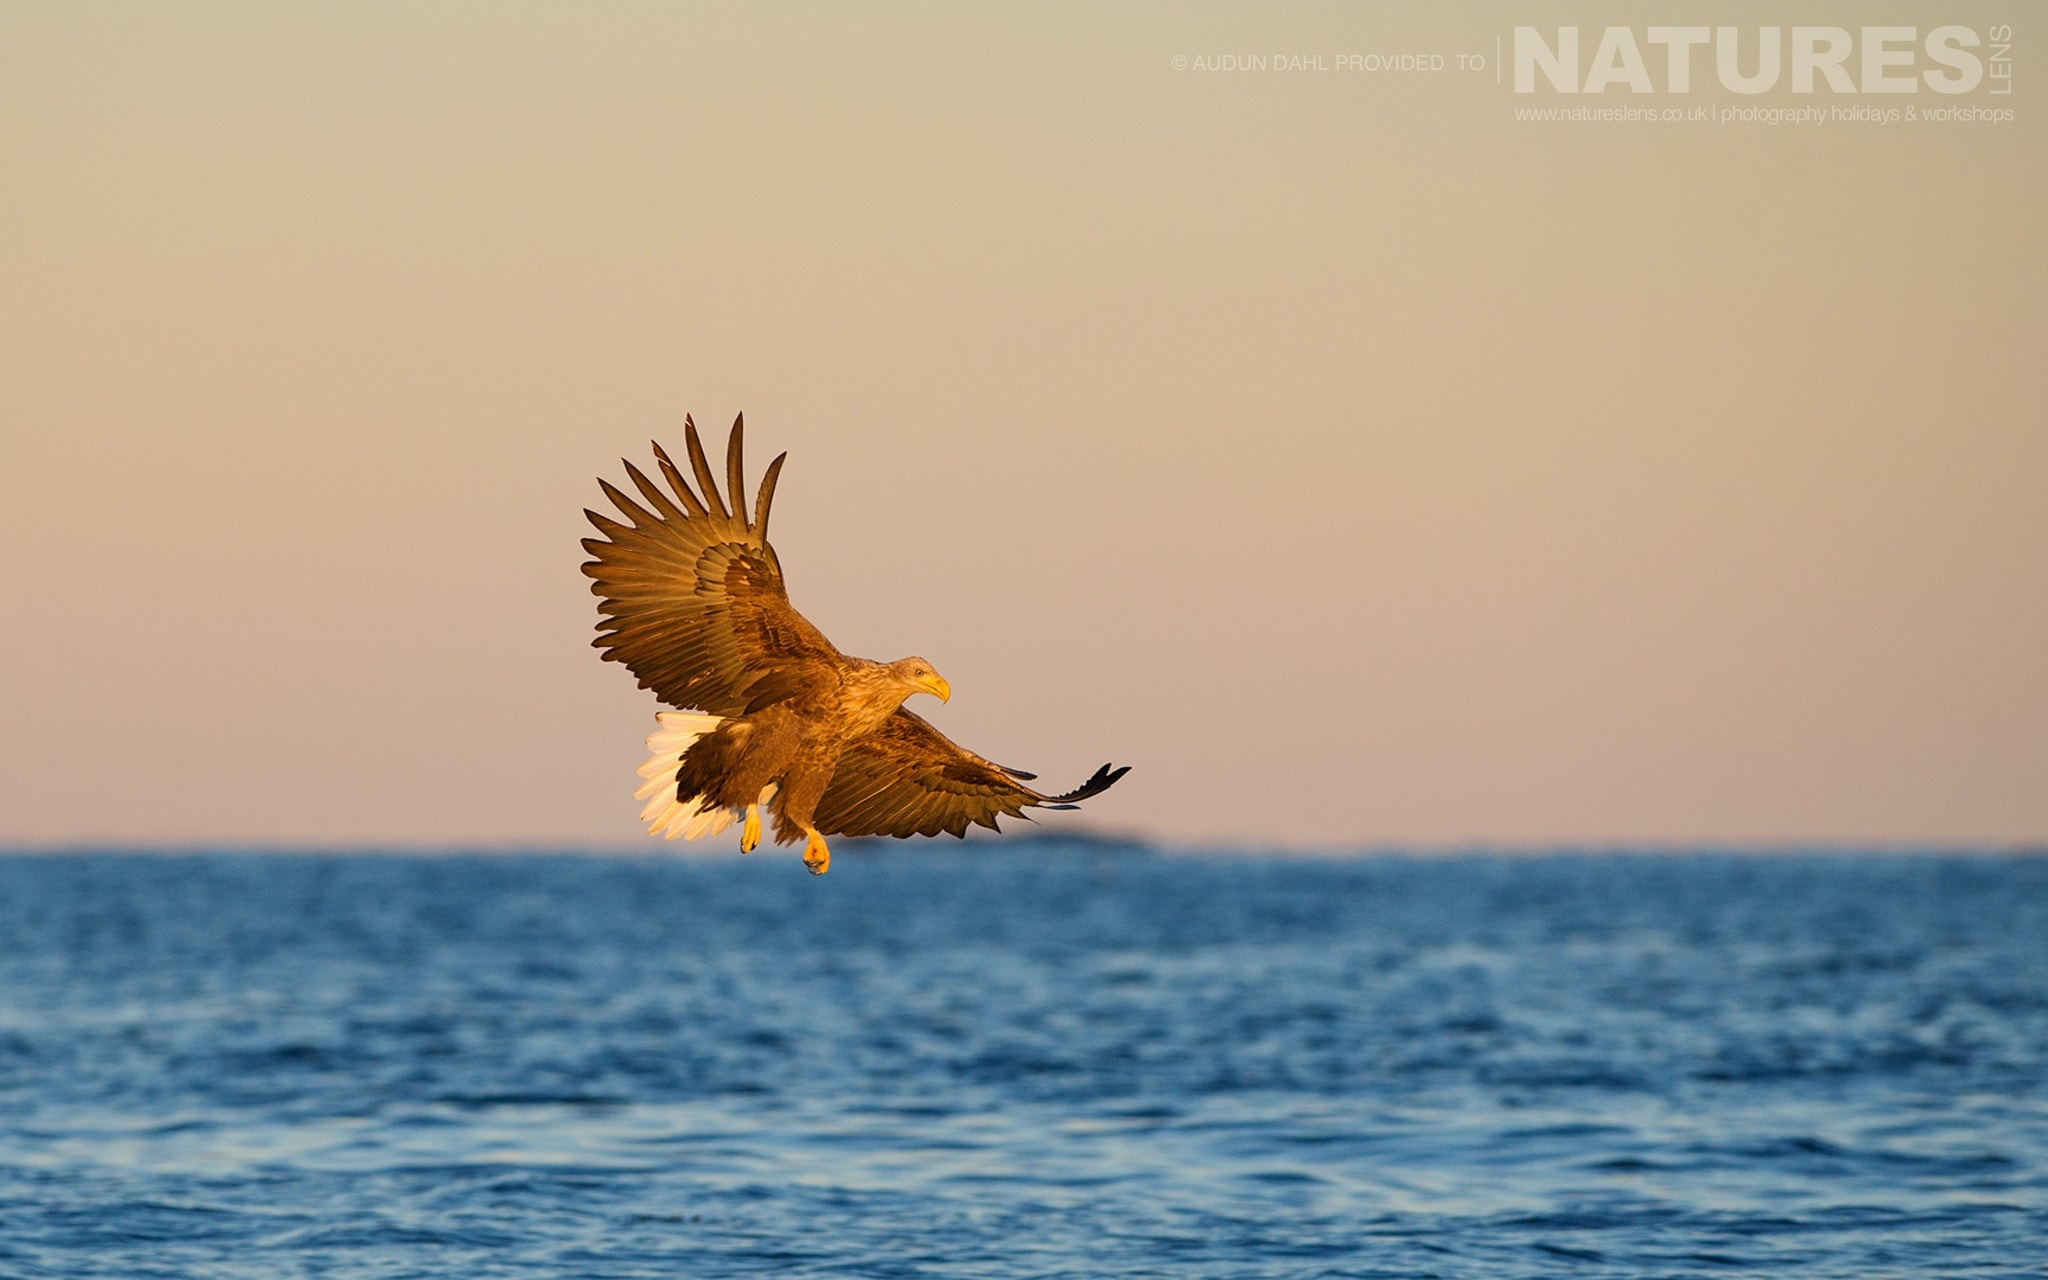 A White tailed Eagle flies over ice cold waters photographed at the locations used for the NaturesLens Winters White tailed Eagles of Norway photography holiday